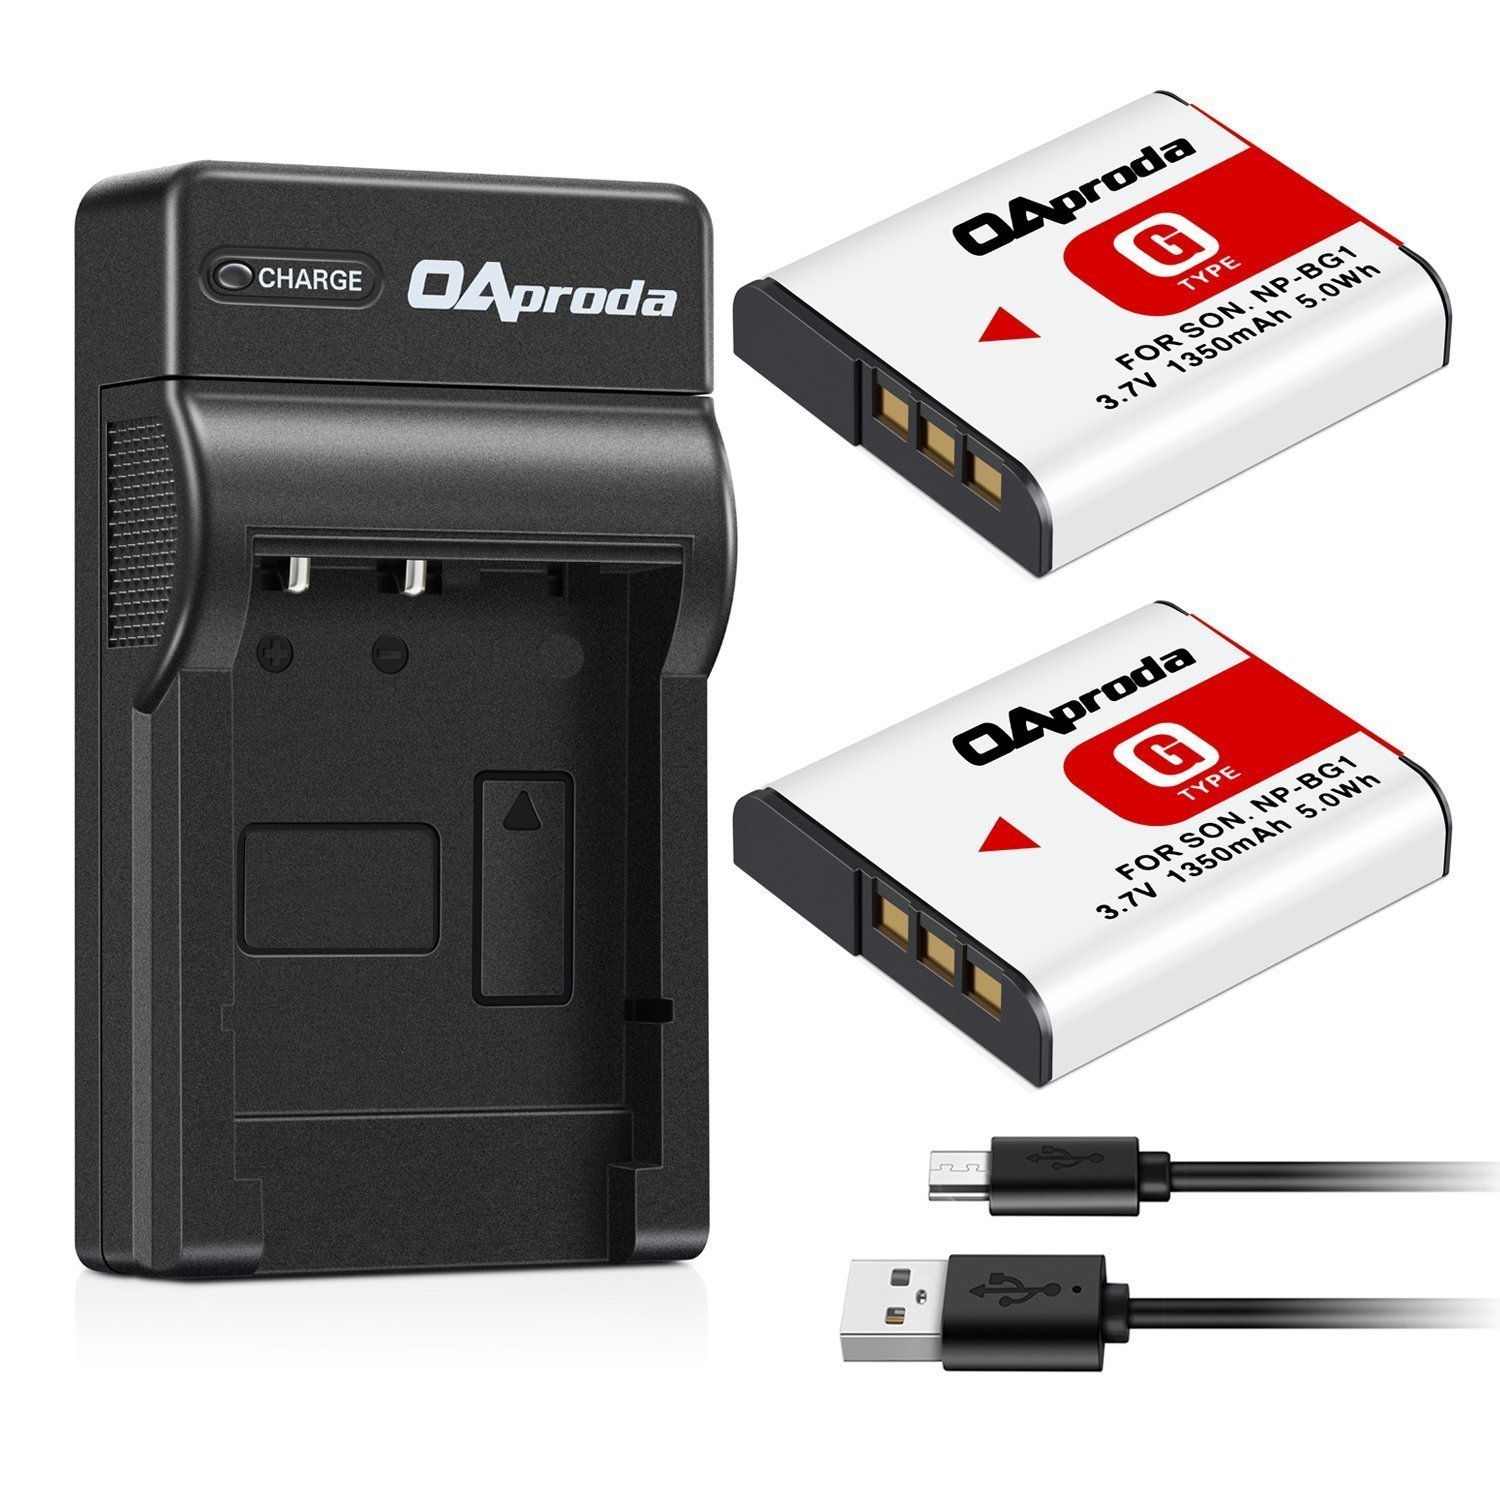 OAproda Replacement NP-BG1 Battery (2 Pack) and Ultra Slim Micro USB Battery Charger for Sony NP-FG1, CyberShot DSC-W30, W35, W50, W55, W70, W80, WX1, WX10, HX9V, H10, H20, H70, H50, H55, H90 by OAproda